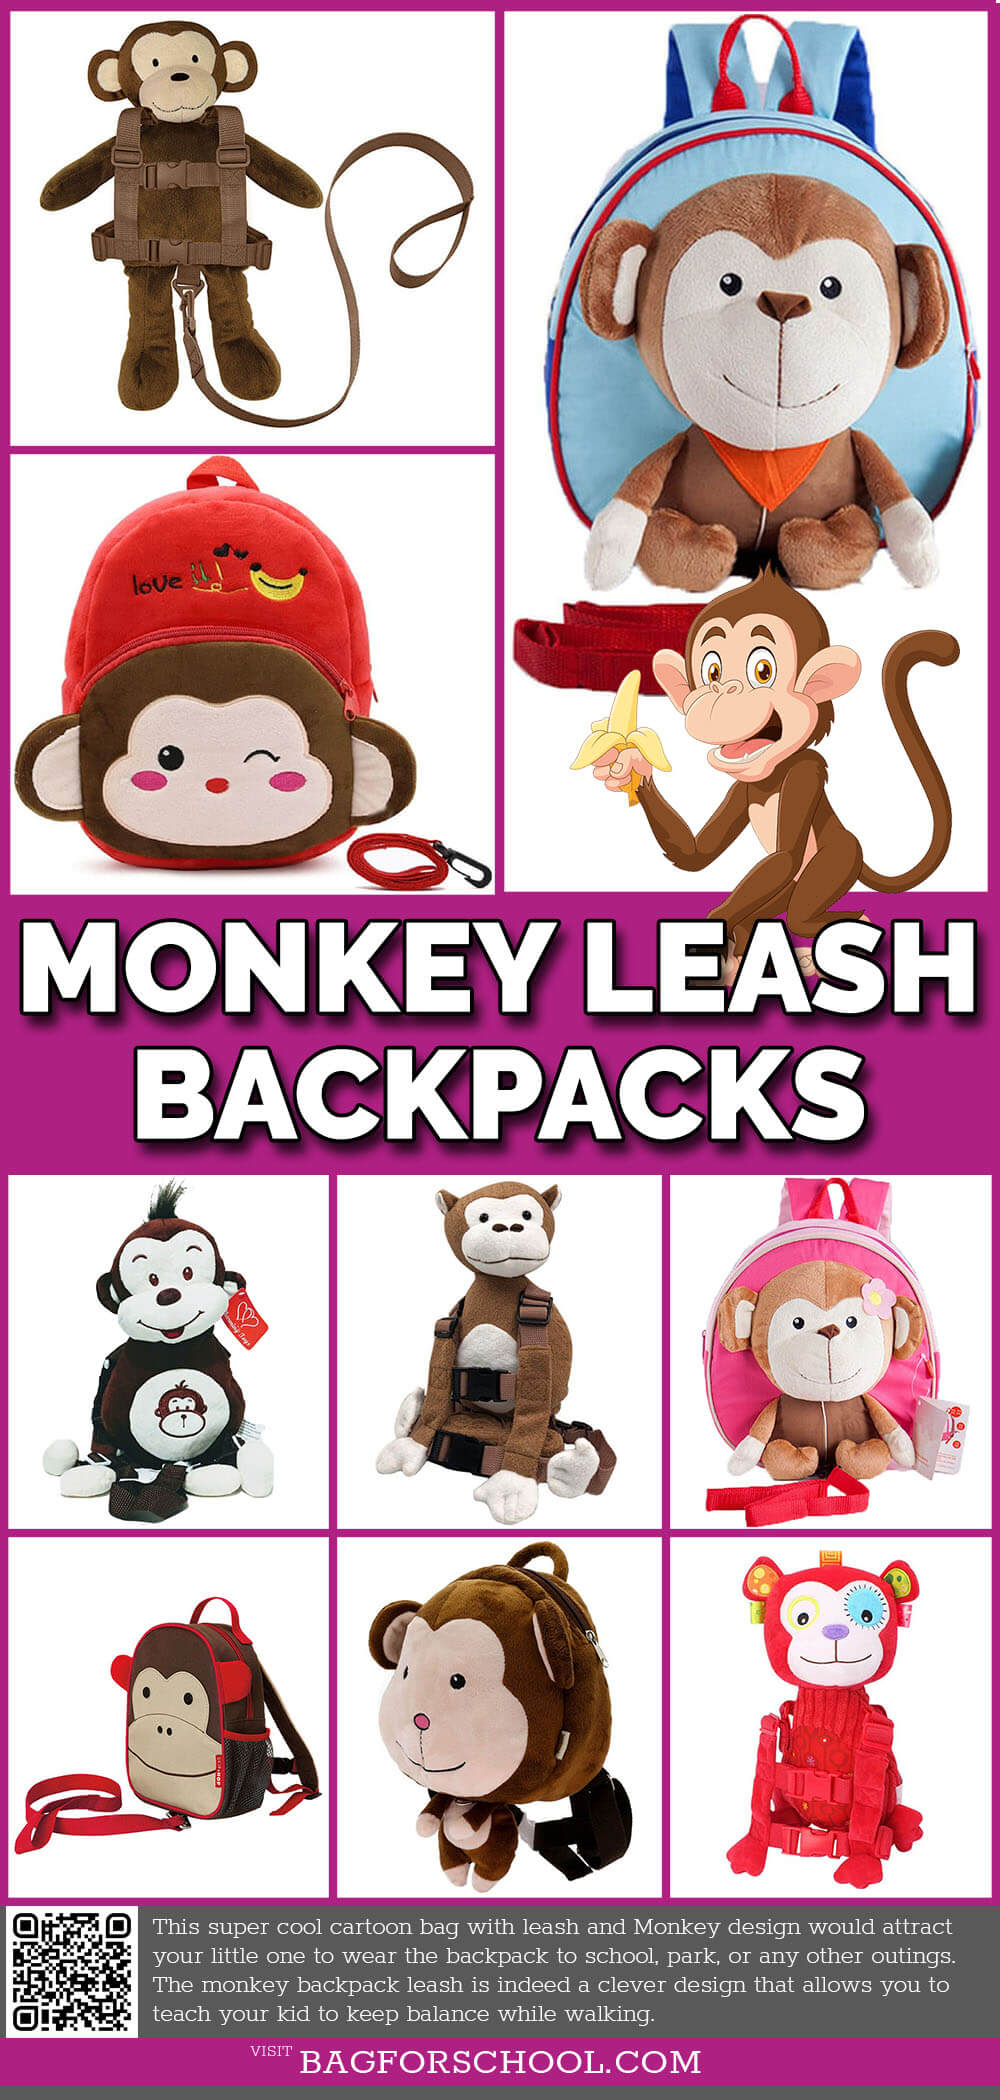 Monkey Leash Backpacks